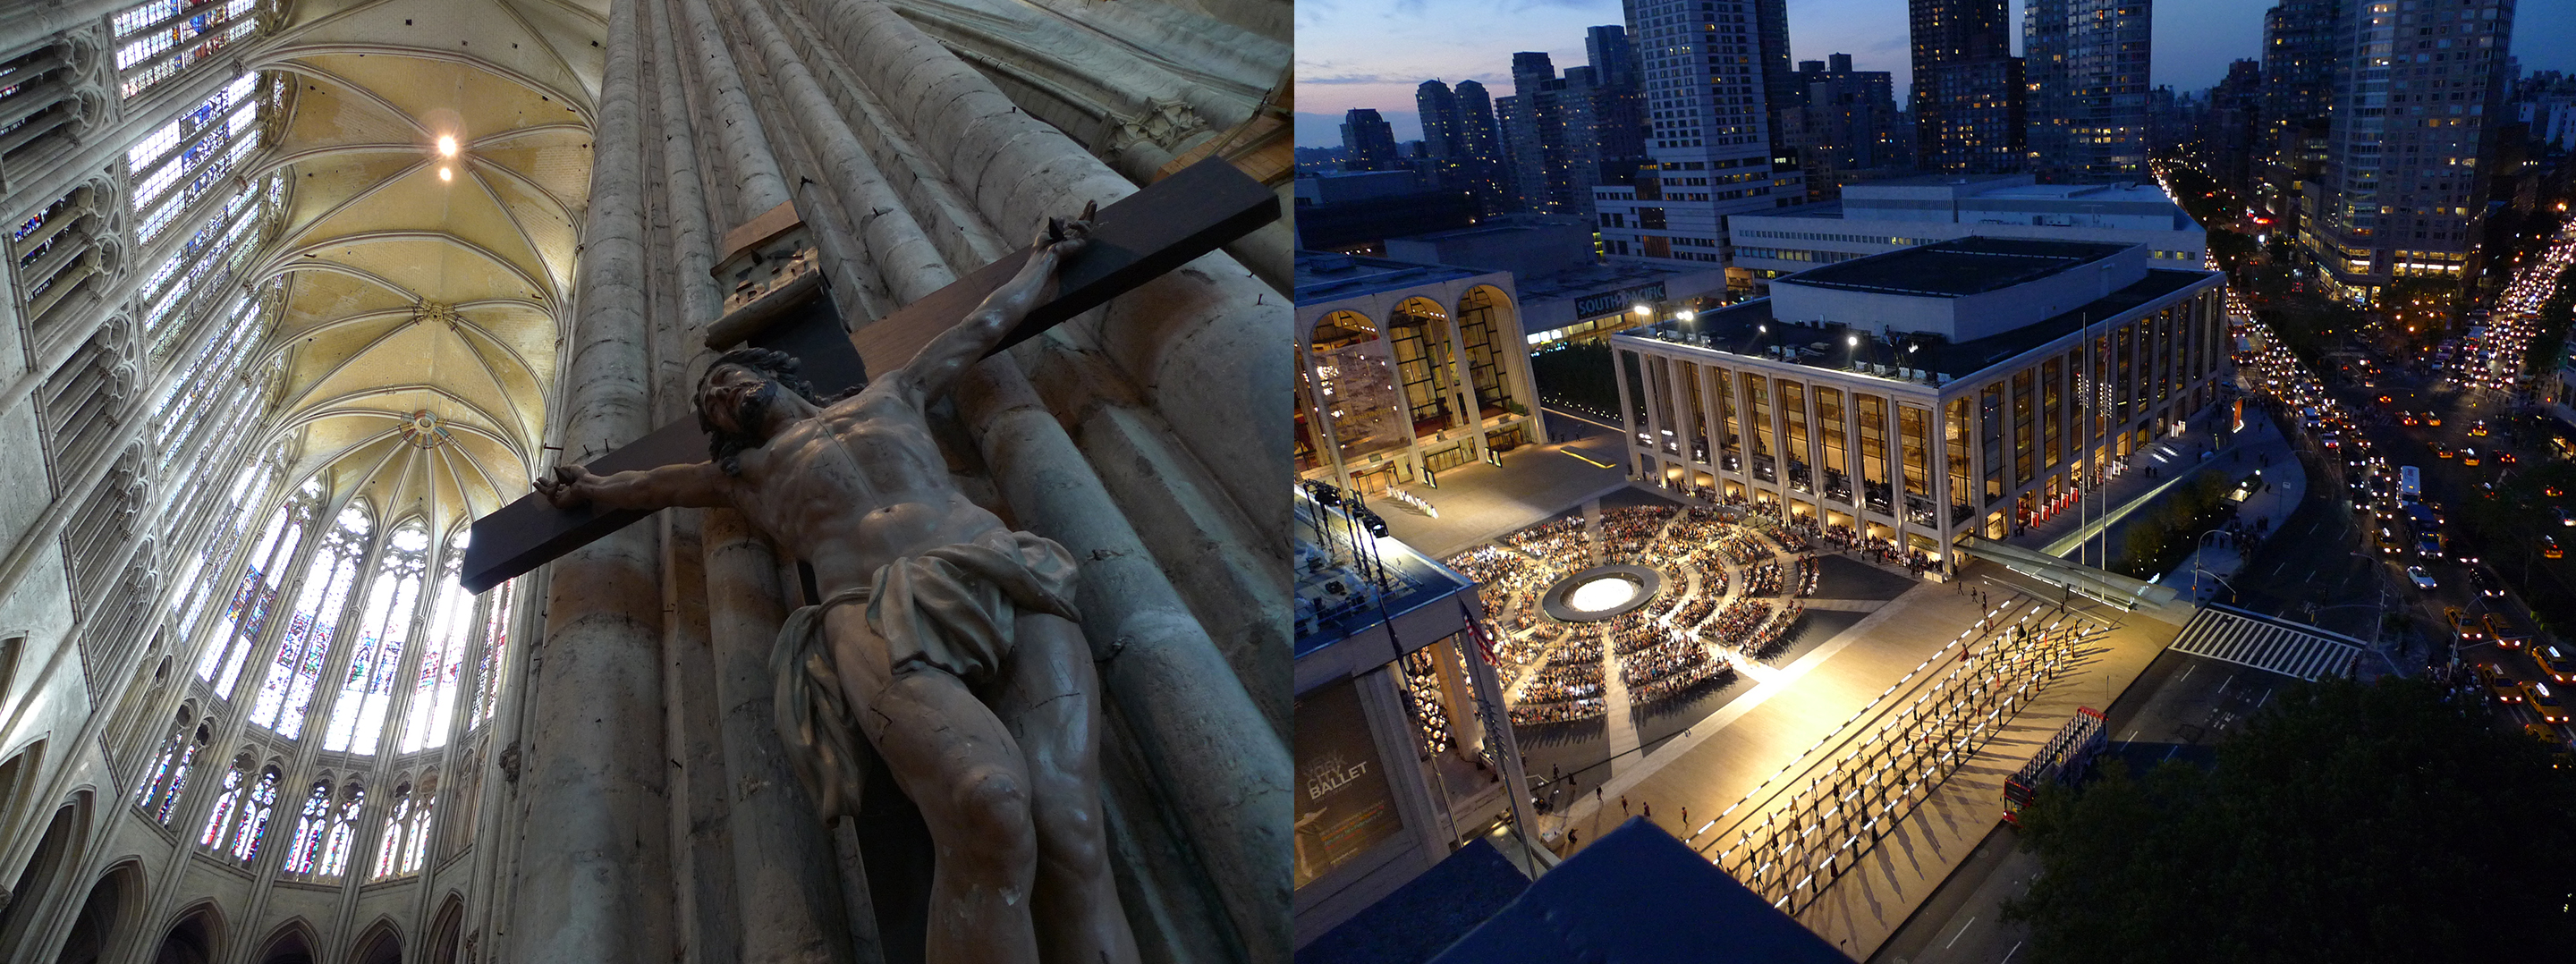 "Still from PBS NOVA's ""Building the Great Cathedrals"" and an image looking down on Lincoln Center"